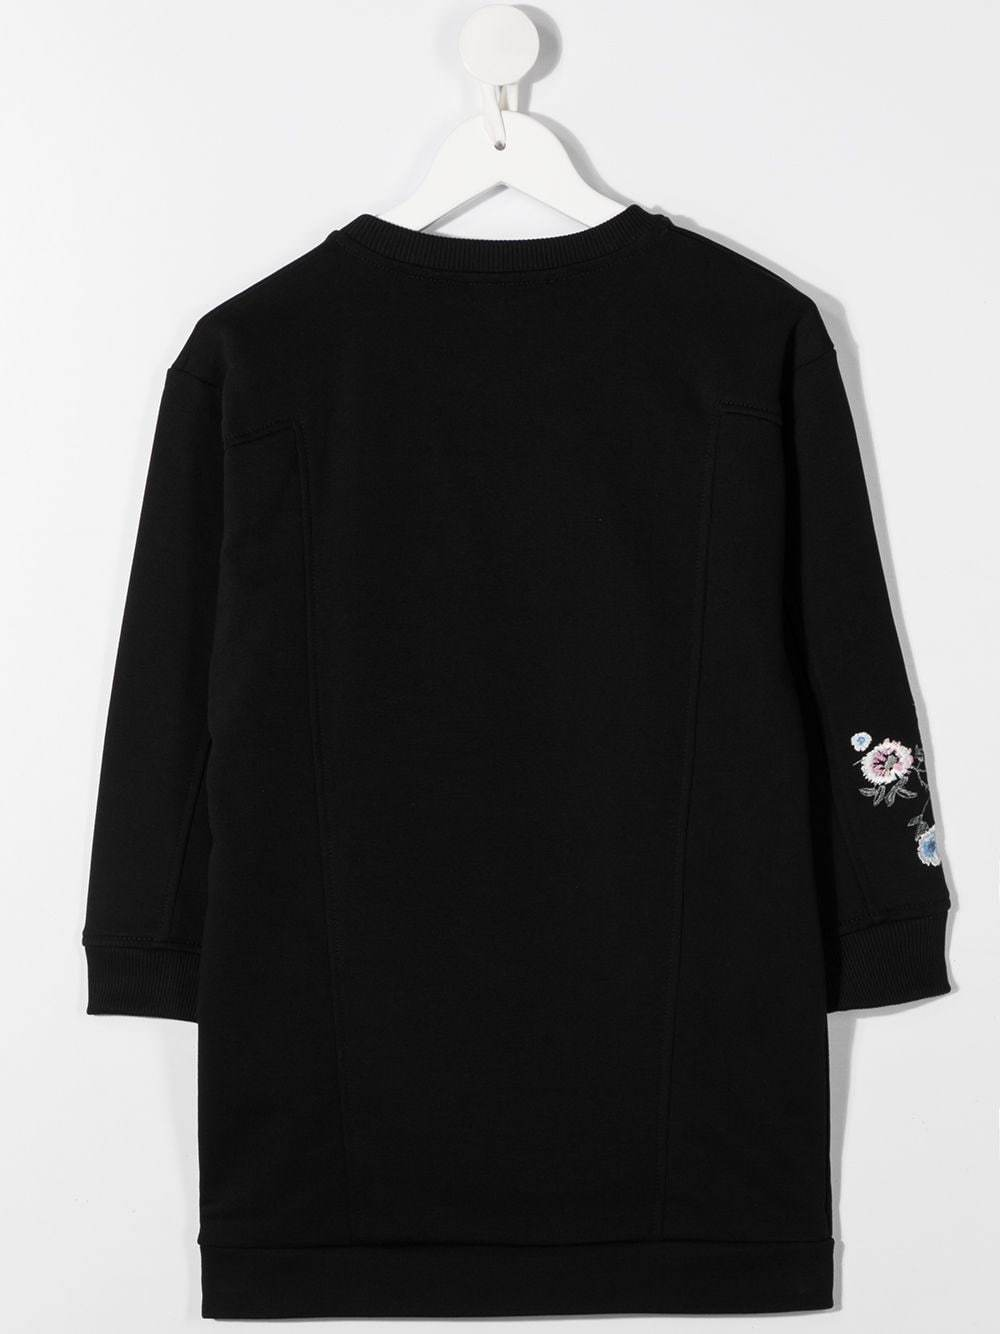 GIVENCHY KIDS Floral Zip Dress Black